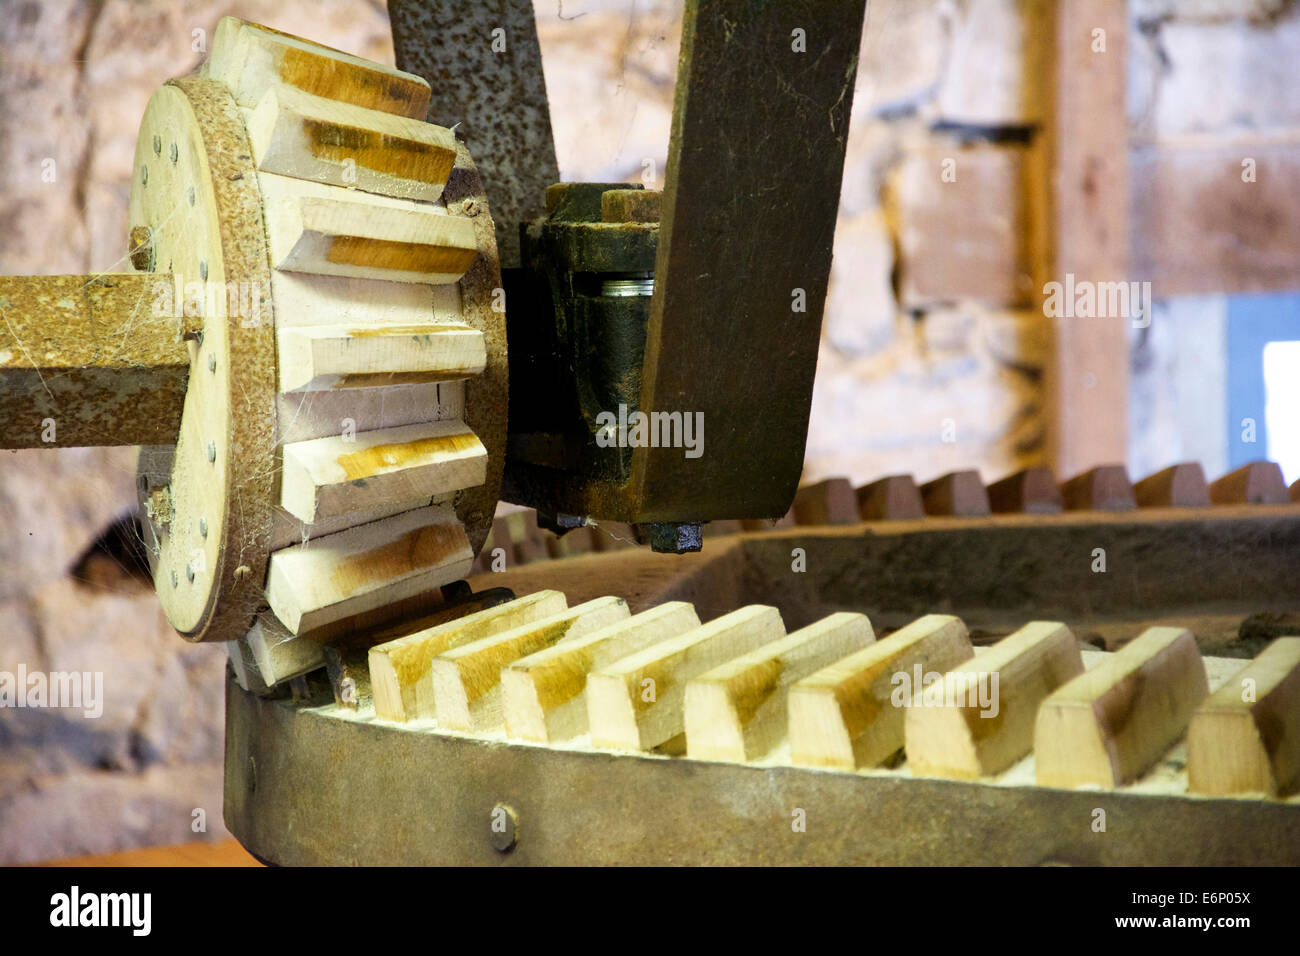 Old machinery. A wooden cog wheel found in a mill. Medieval high tech. - Stock Image